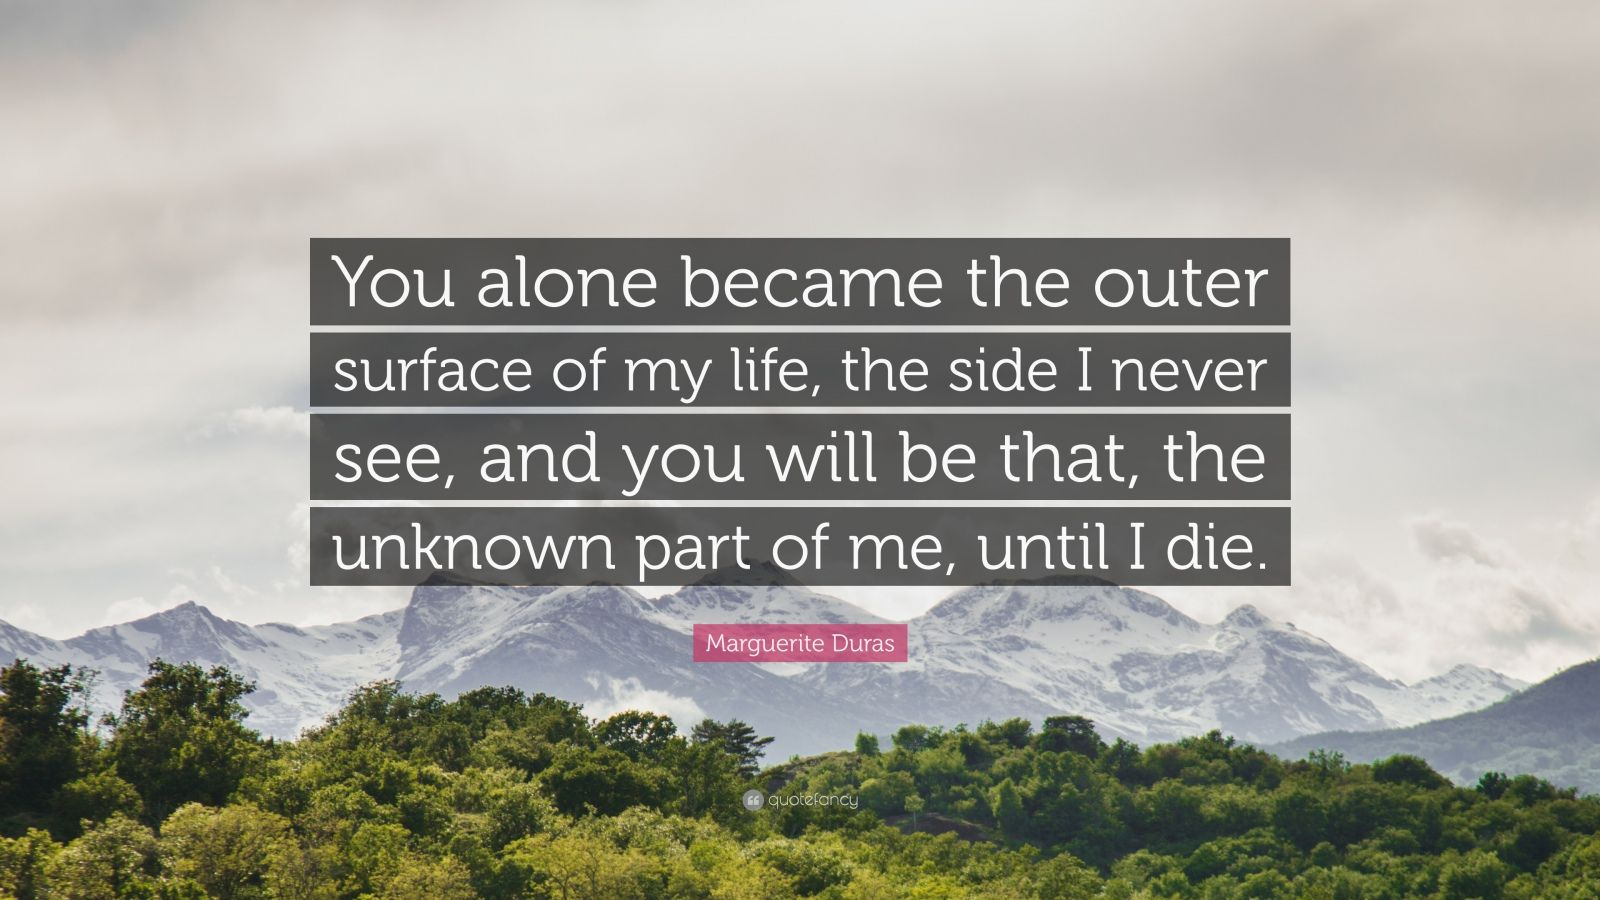 """Marguerite Duras Quote: """"You alone became the outer surface of my life, the side I never see, and you will be that, the unknown part of me, until I die."""""""